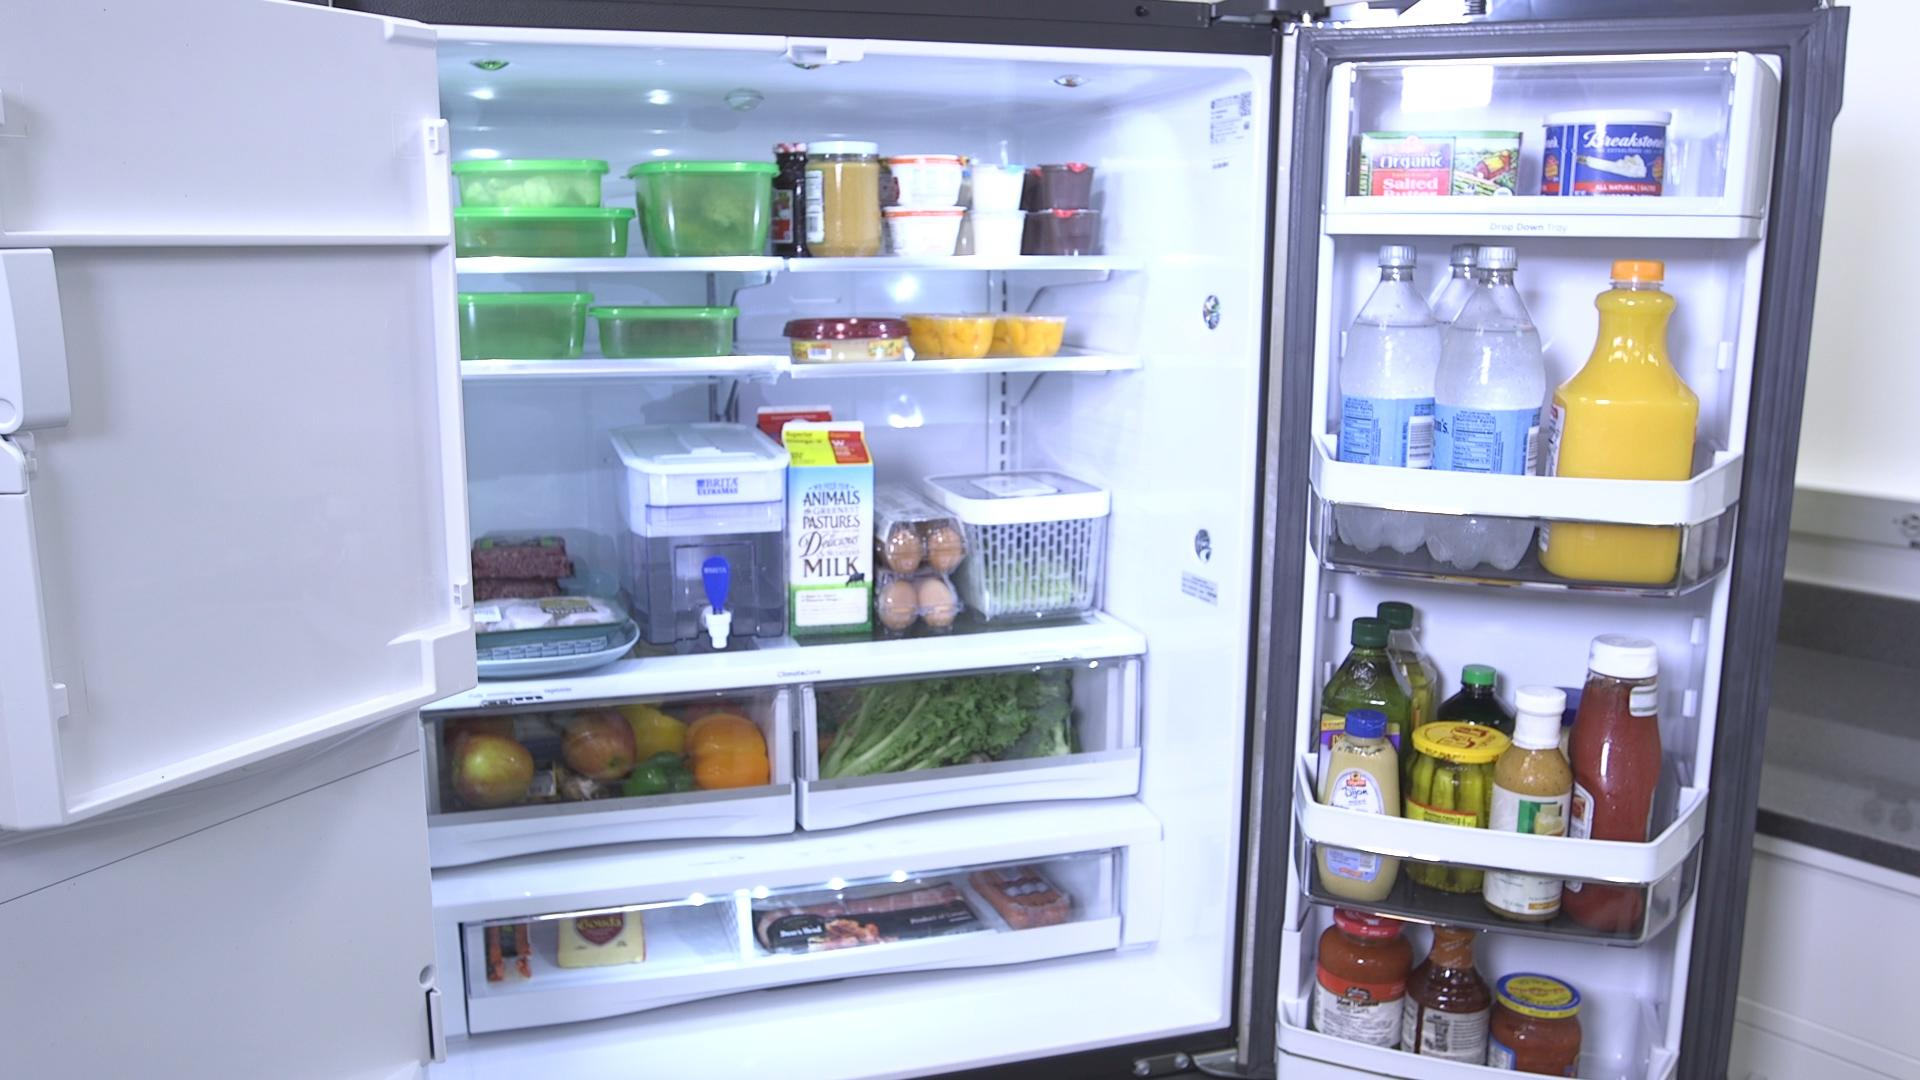 How to choose the right refrigerator